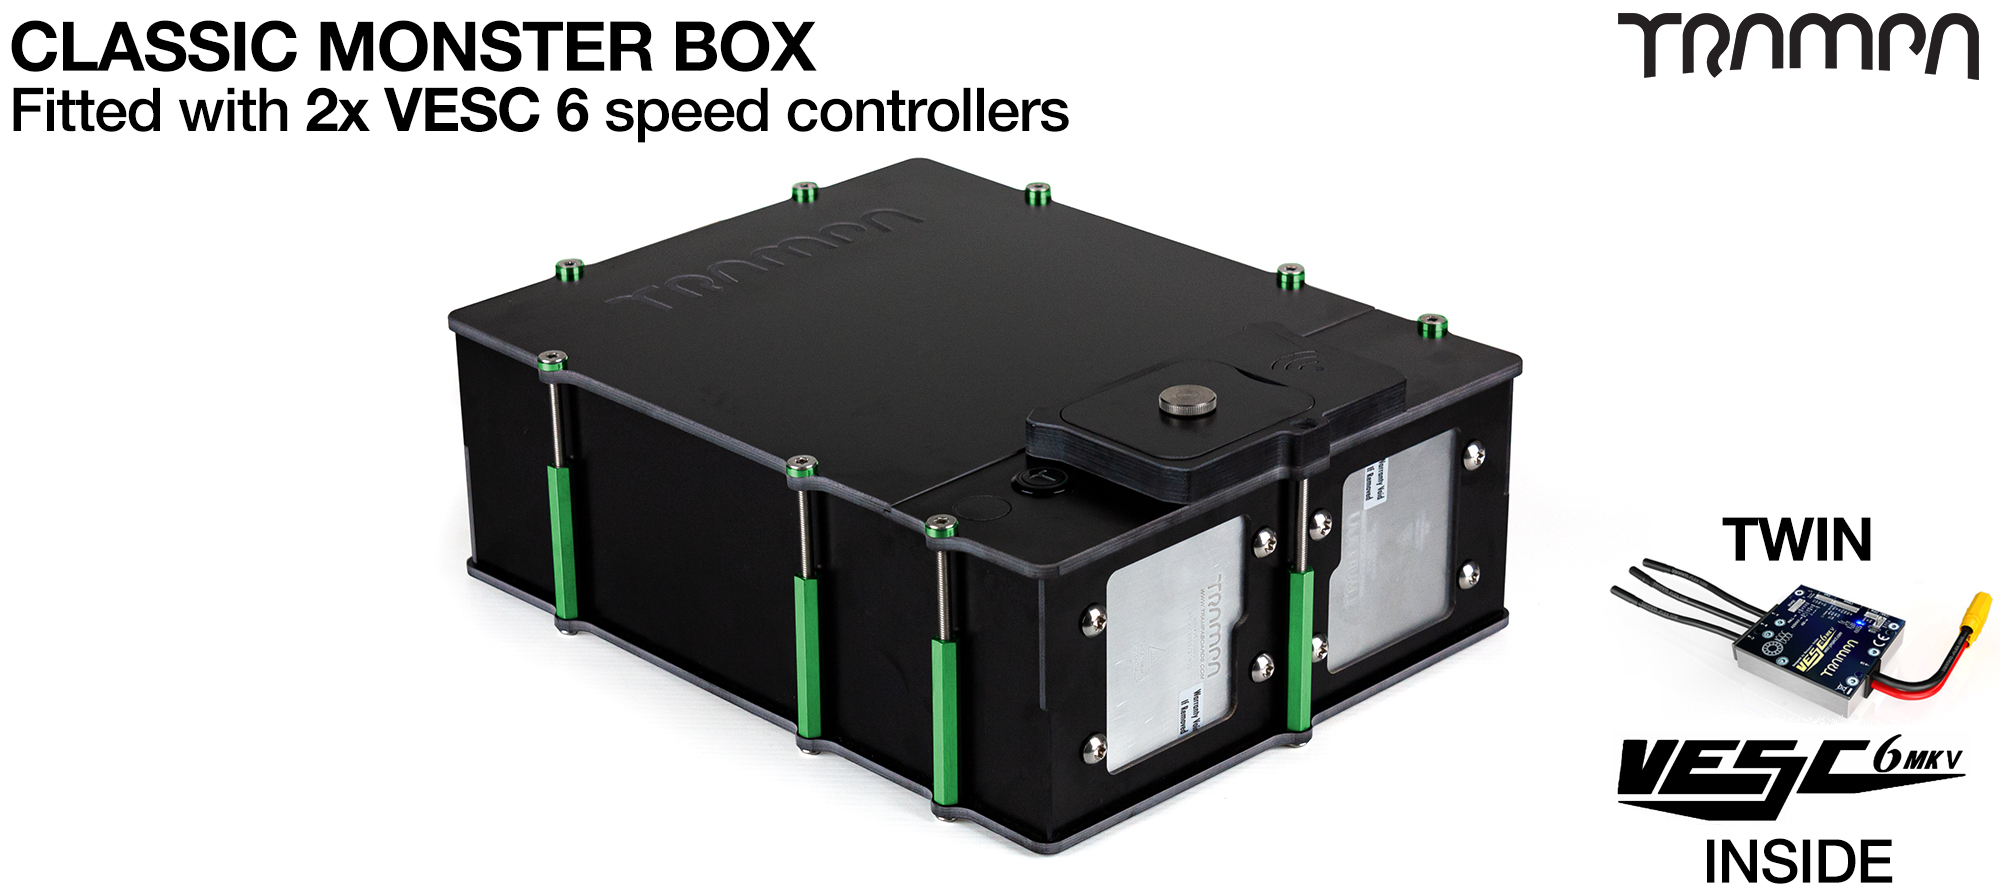 Classic MONSTER Box with 2x VESC 6 & 18650 Cell pack - WITH CELLS UK Customers only (+£275)